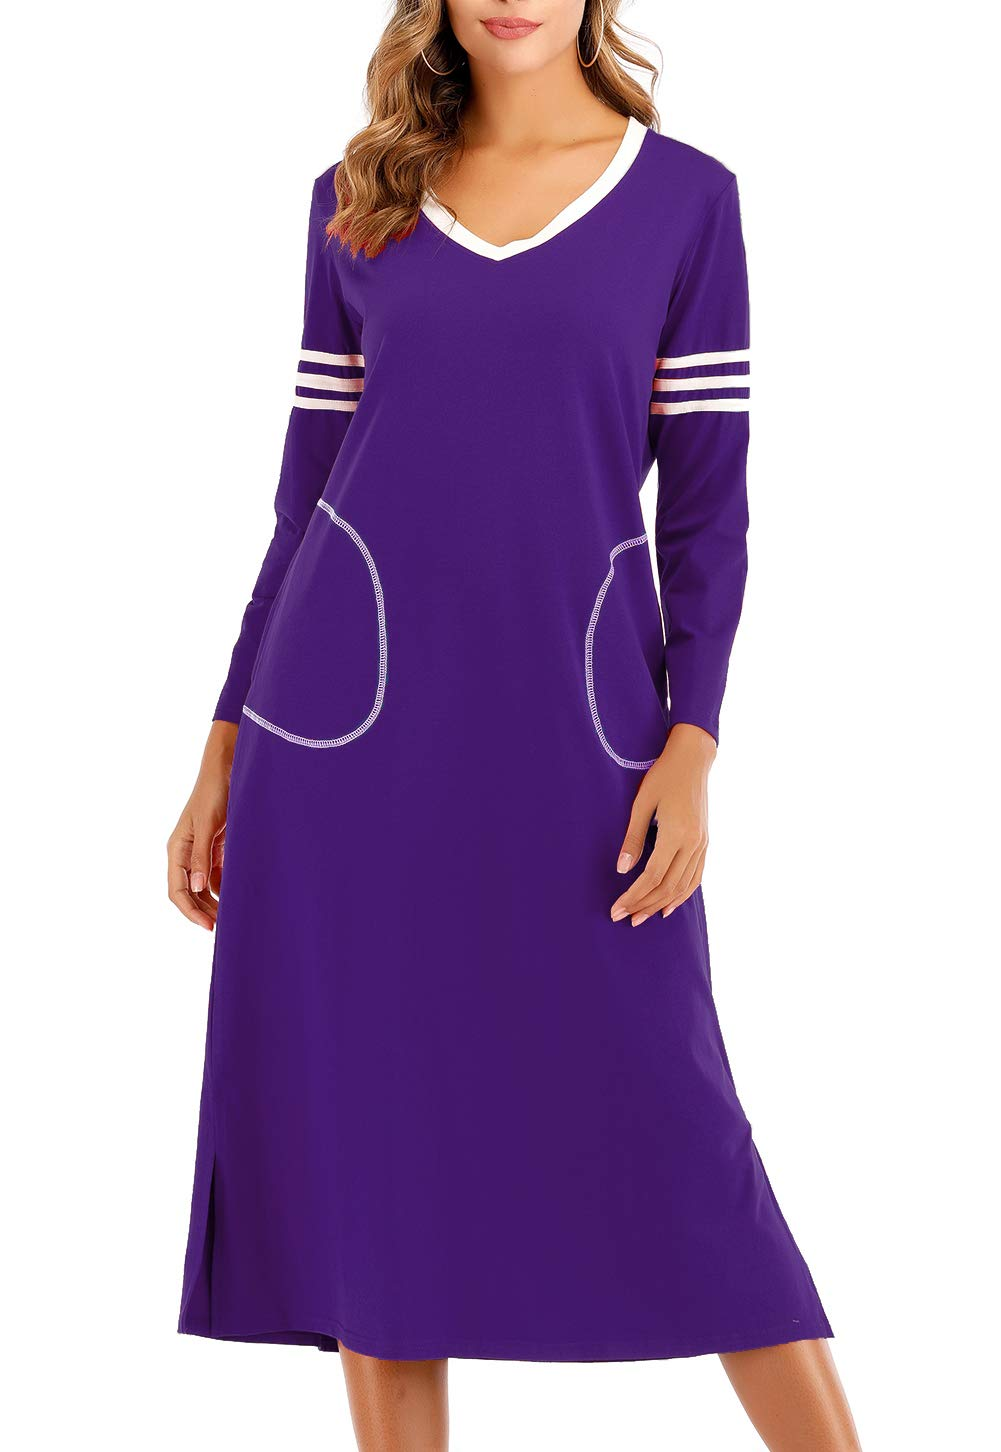 AOVXO Long Nightgown Womens V Neck Long Sleeve Nightshirt Ultra-Soft Cotton Fabric Split Hem Design with 2 Side Deep Pockets (Purple, L)